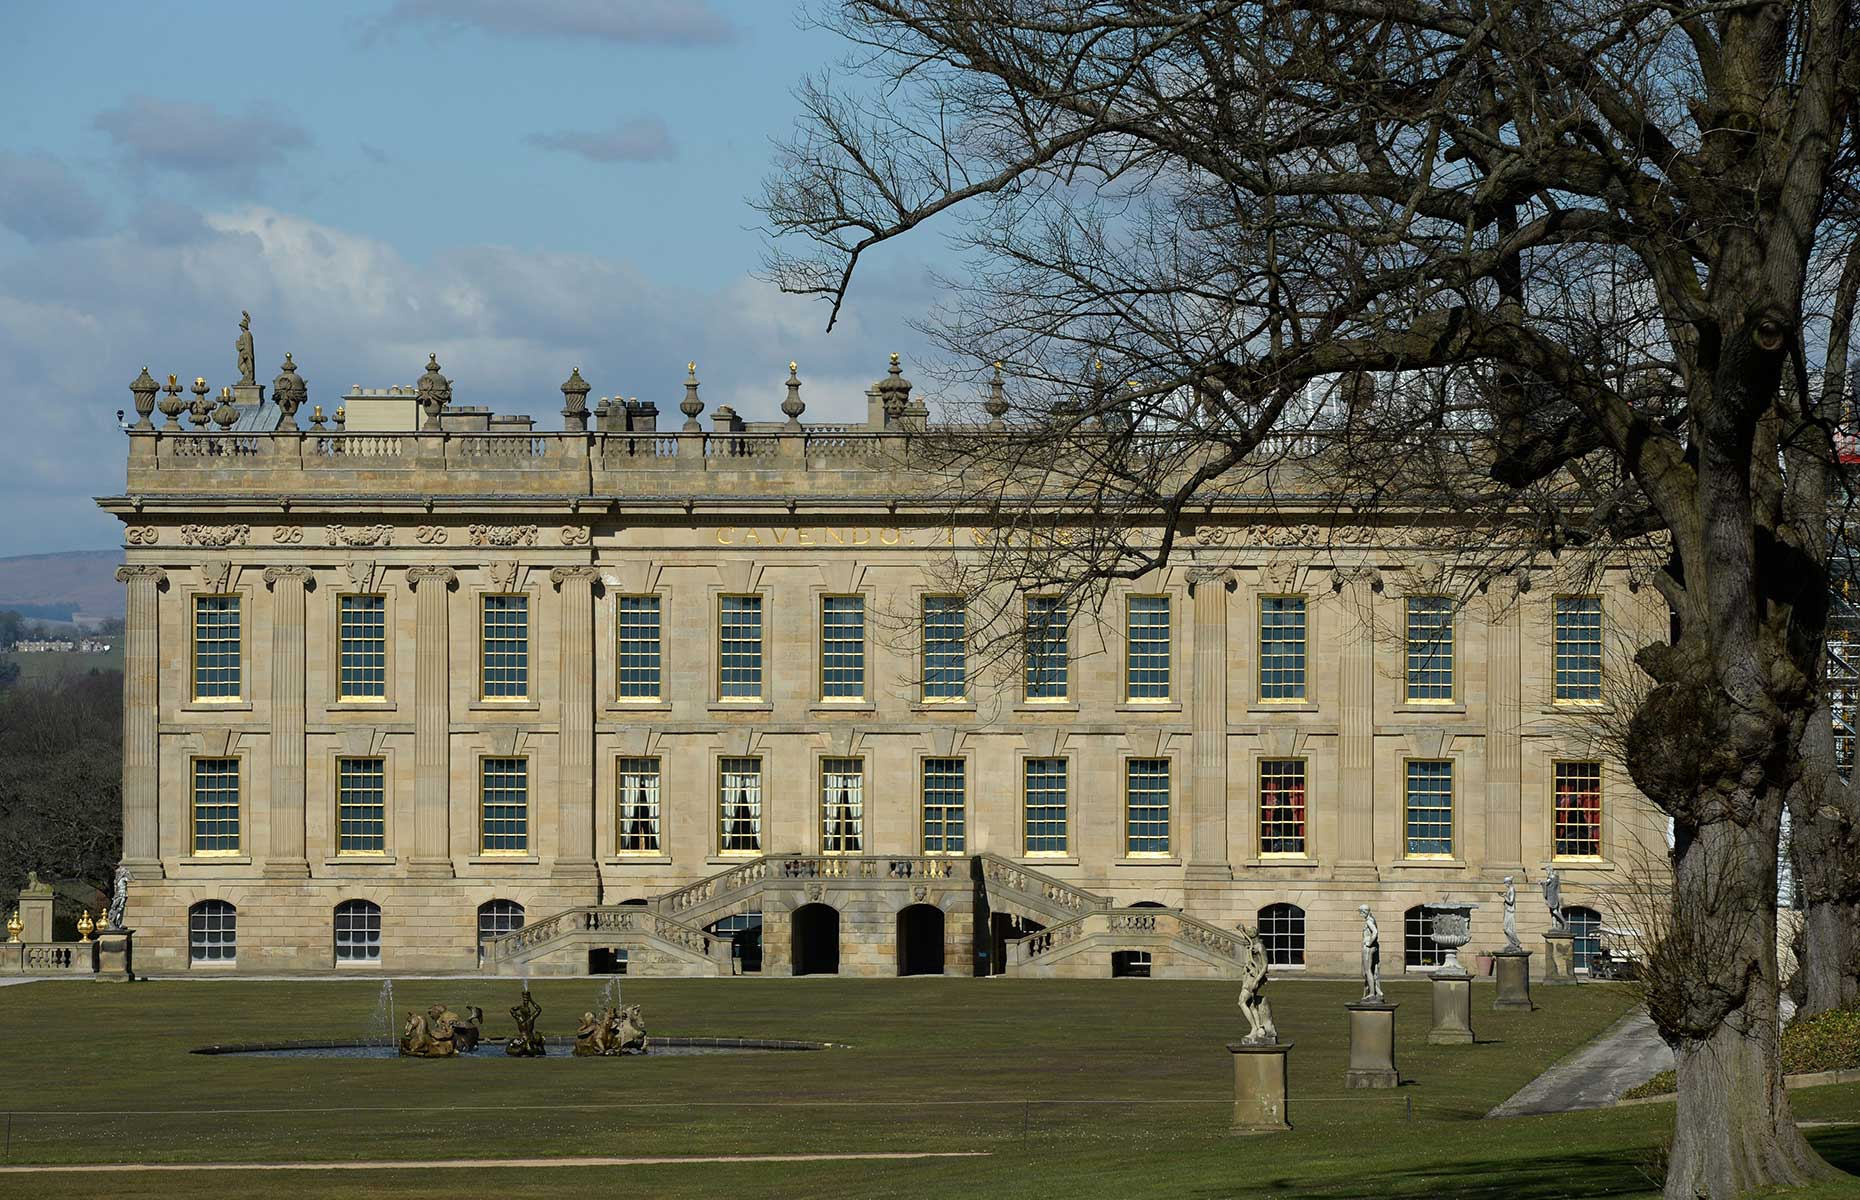 Chatsworth House (Image: OLI SCARFF/AFP via Getty Images)